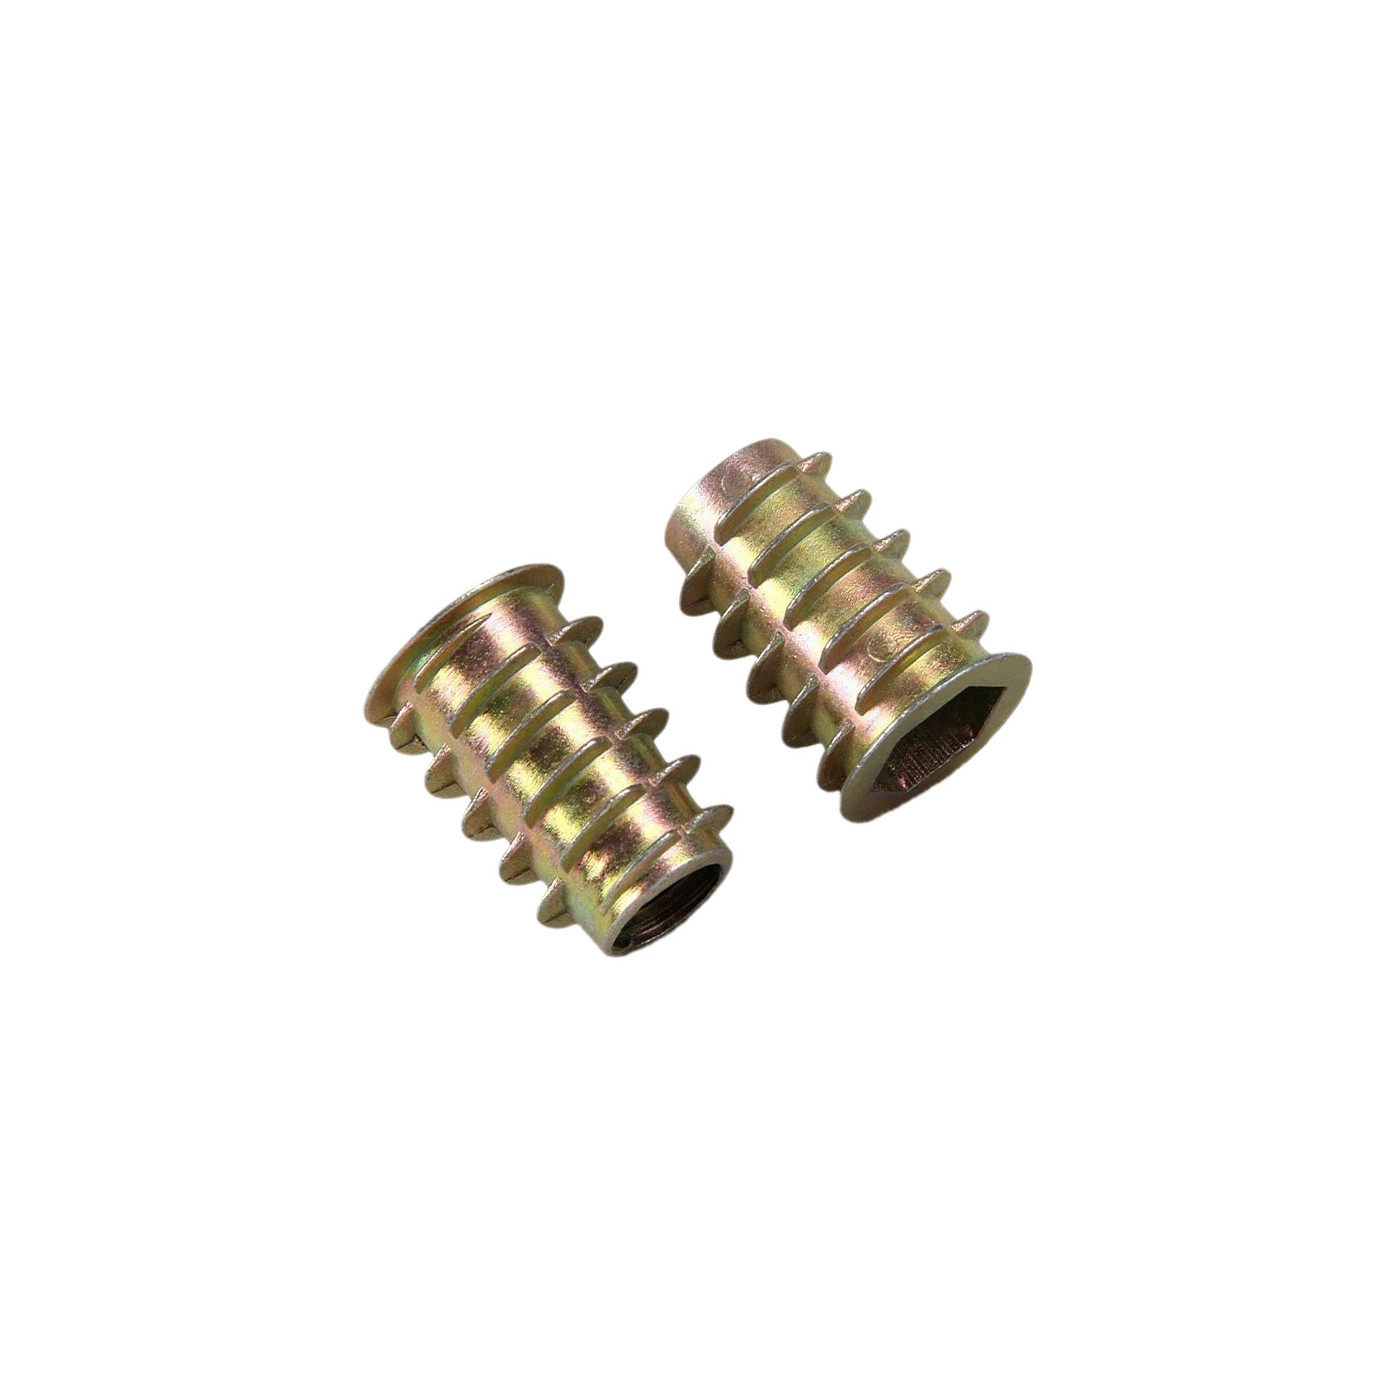 Set of 50 threaded inserts (screw-in nuts, M6x10 mm)  - 1